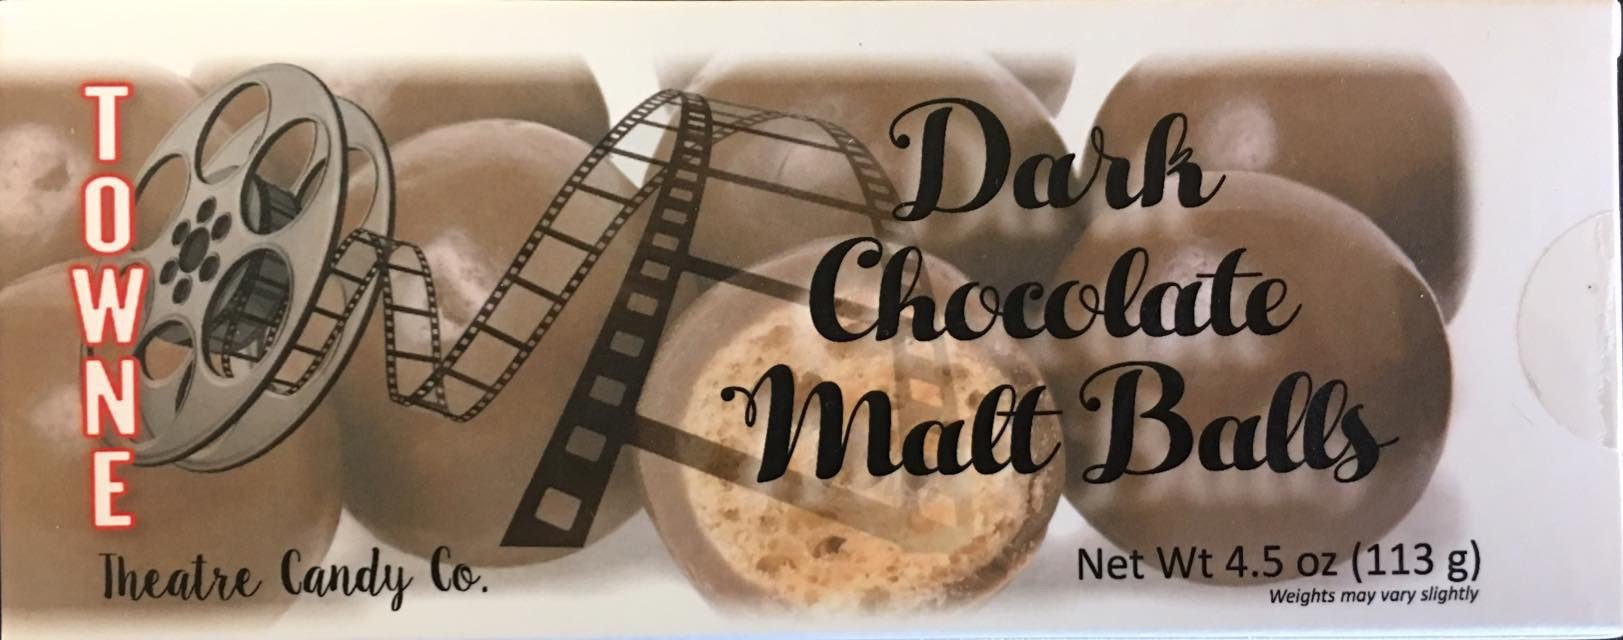 Dark Chocolate Covered Malt Balls pkg